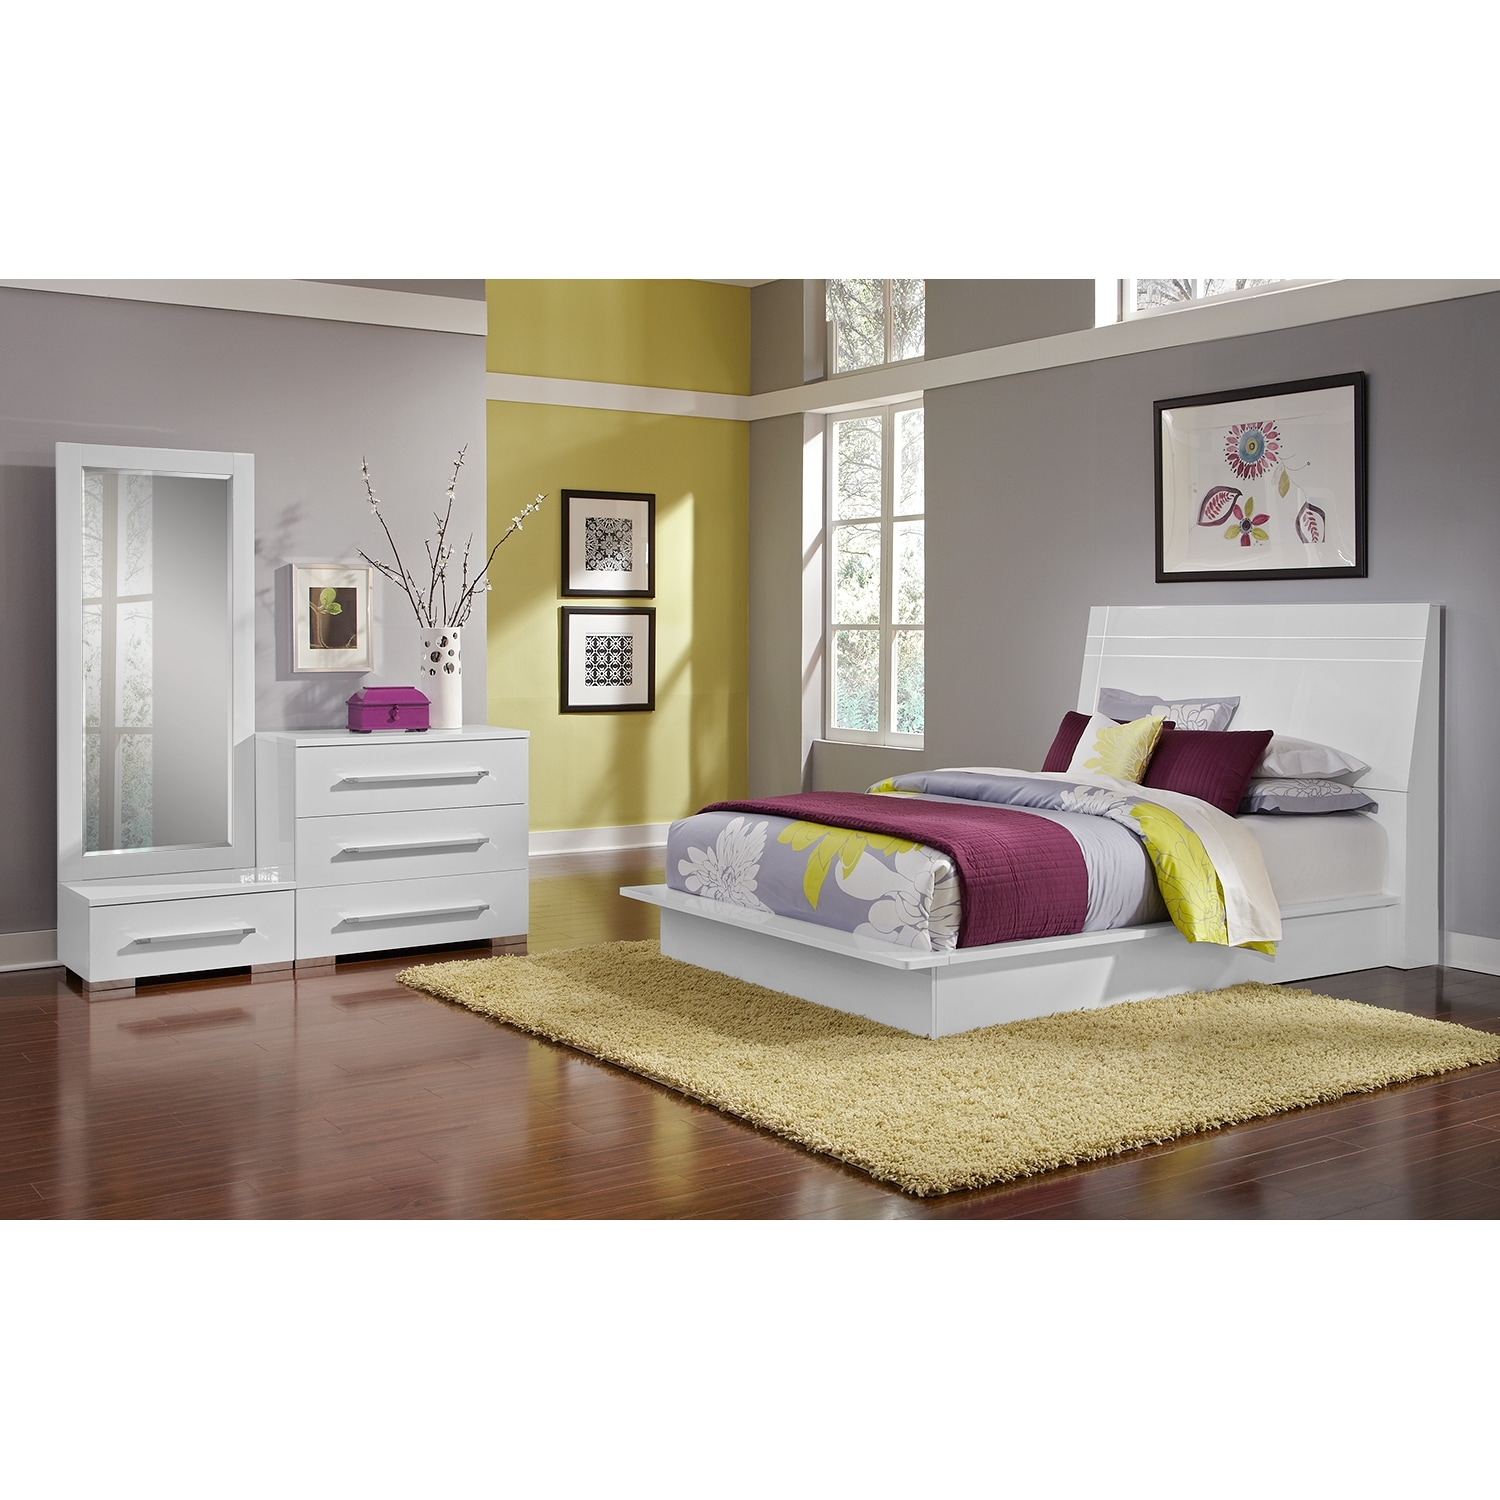 ... II Bedroom 5 Pc. Queen Bedroom (Alternate) - Value City Furniture